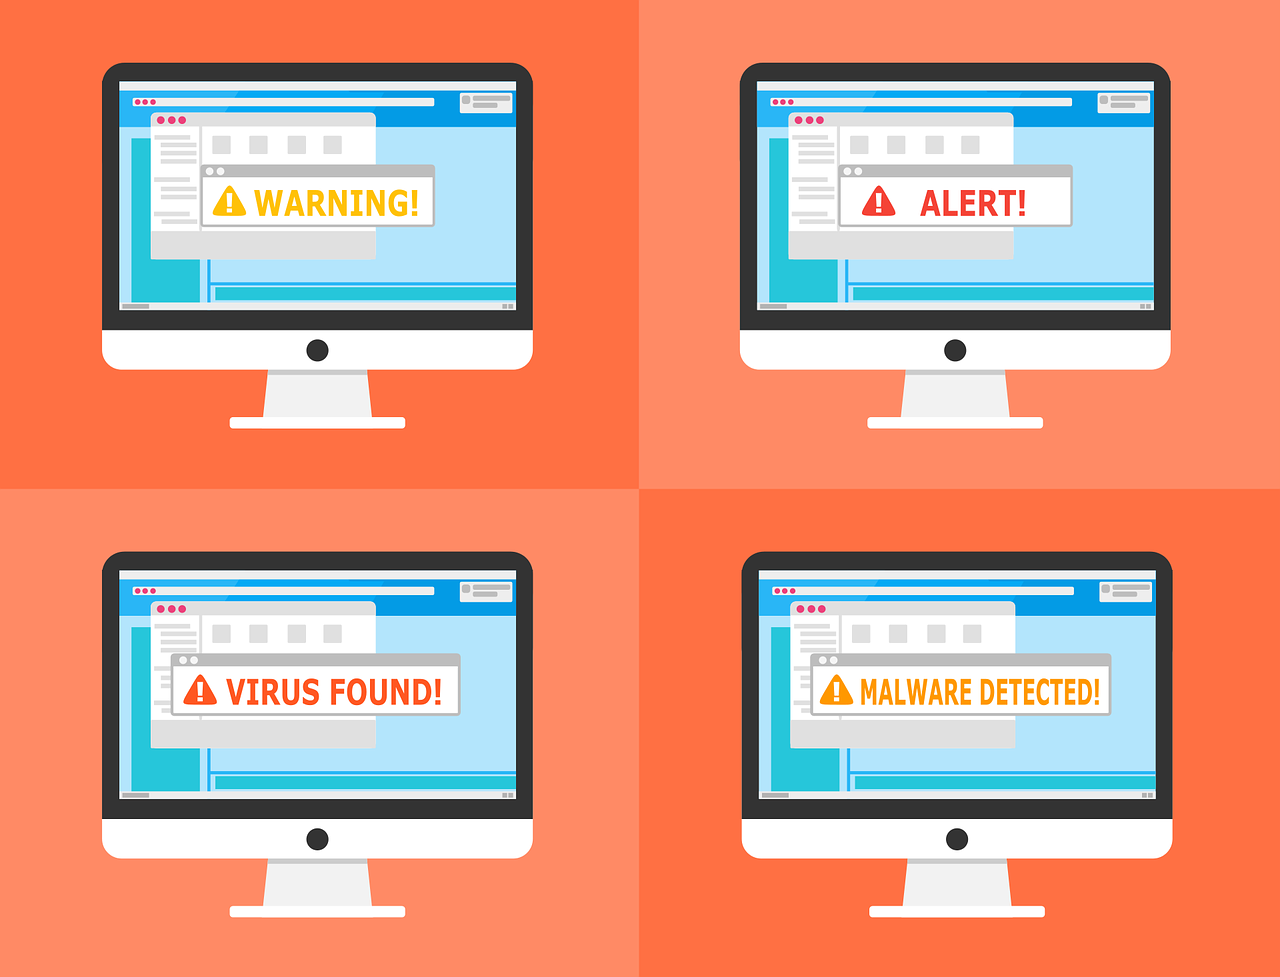 Computers showing malware and virus warnings